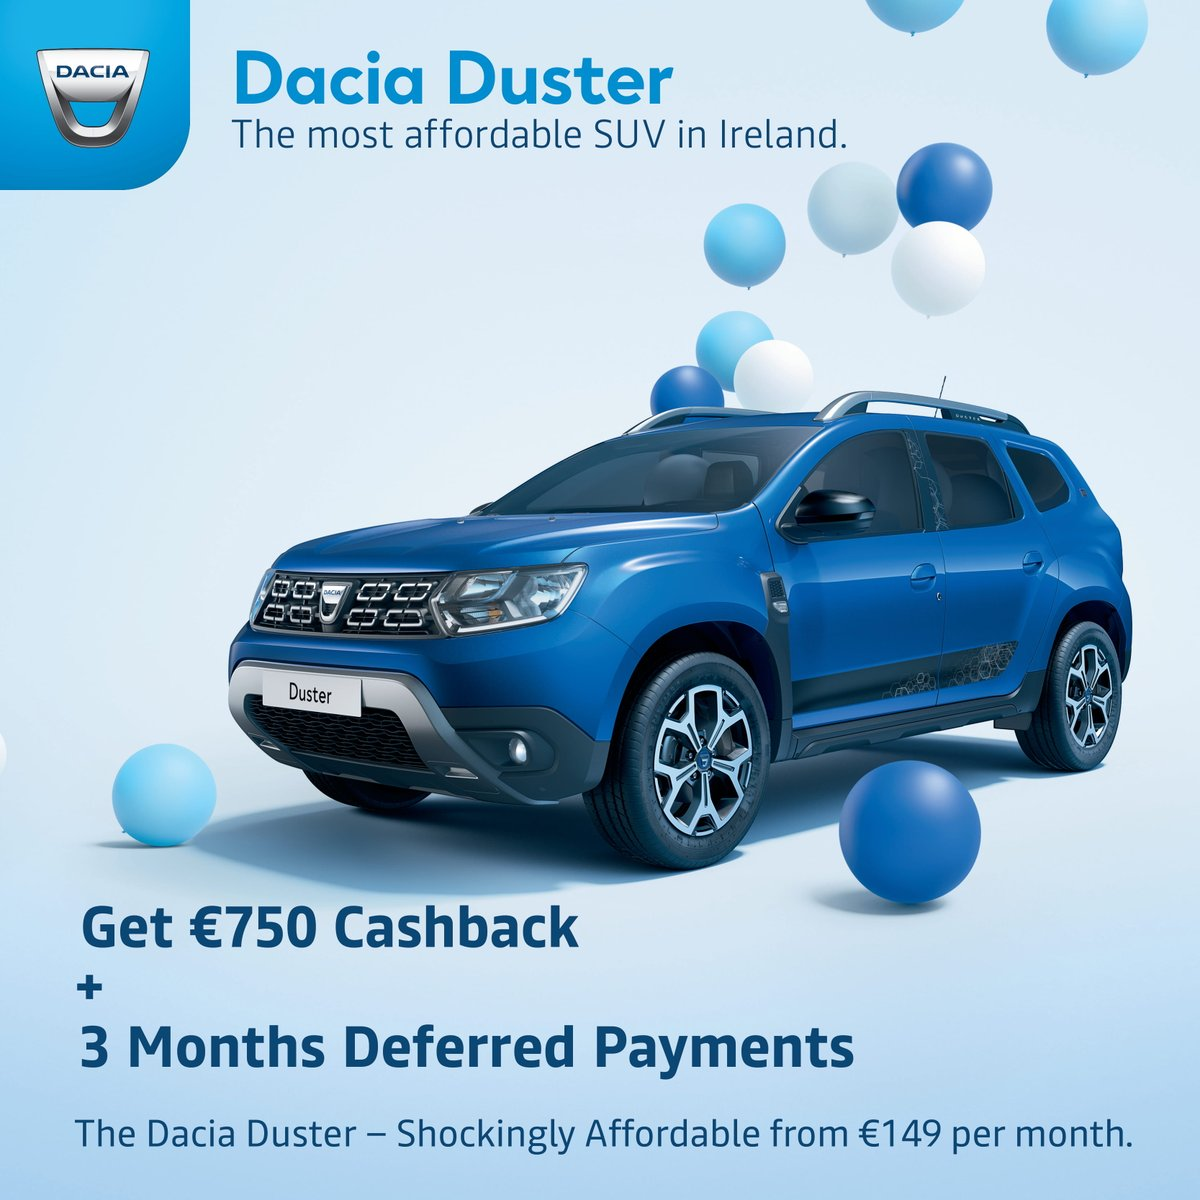 Dacia Duster with €750 Cashback. Why buy used when you can buy new? Still Shockingly Affordable from €149 per month. https://t.co/5blFj3AXNE